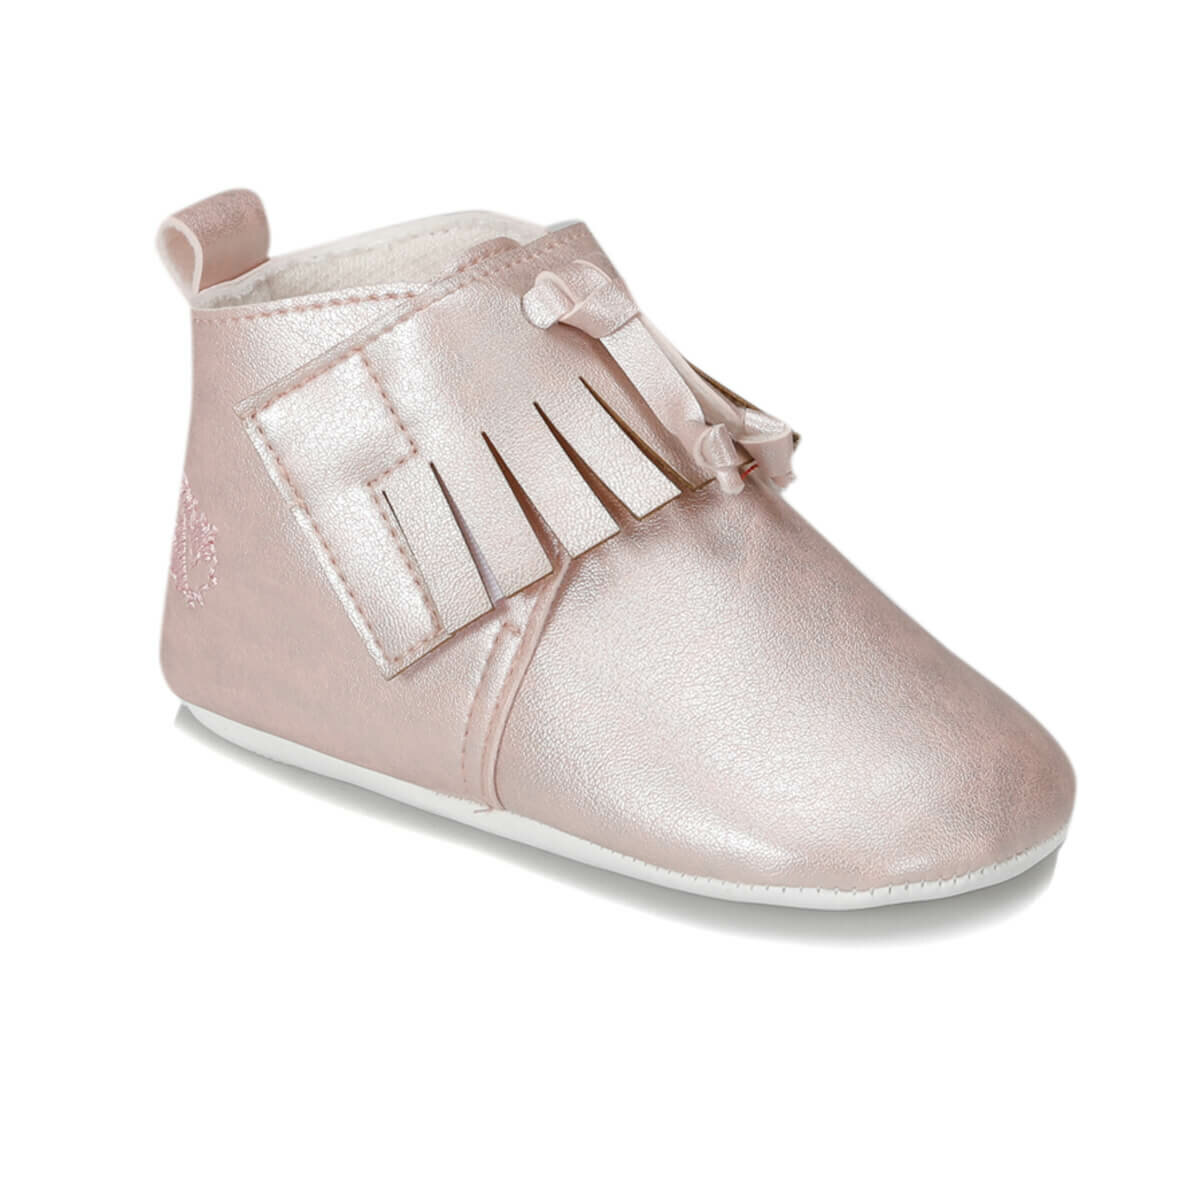 FLO CHOKO 9PR Light Pink Female Child Walking Shoes LUMBERJACK